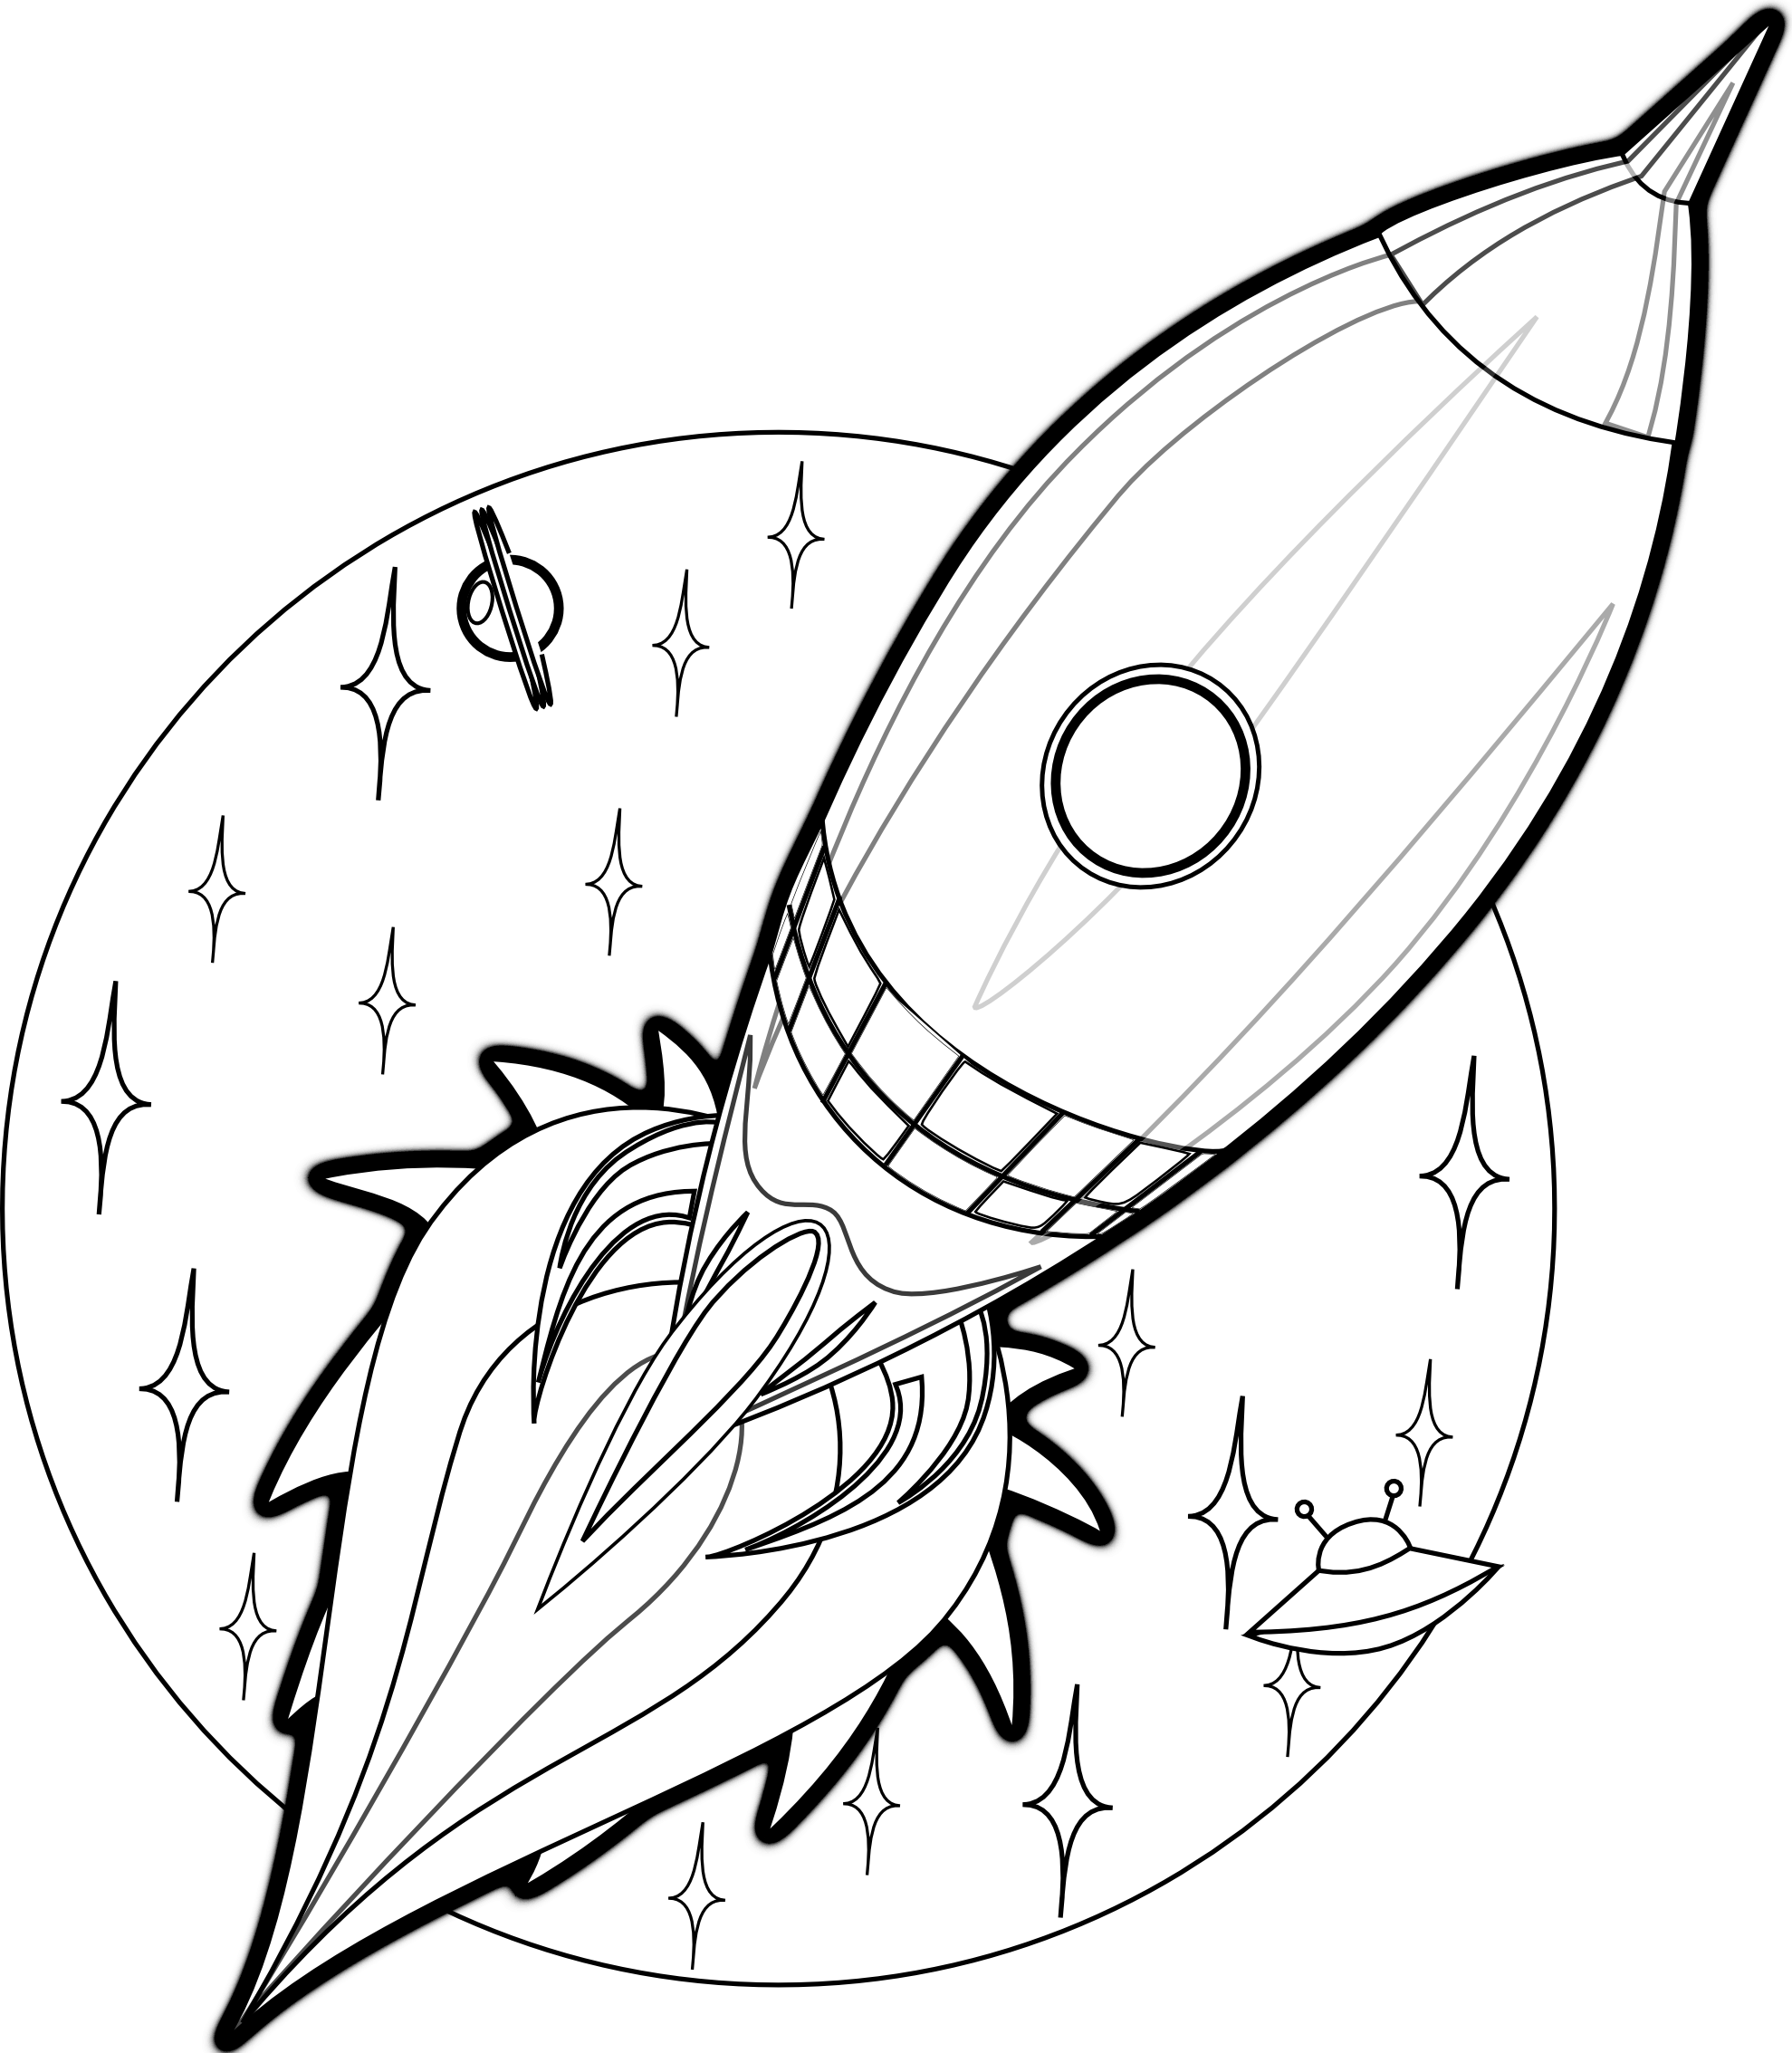 Free printable rocket ship coloring pages for kids drawings